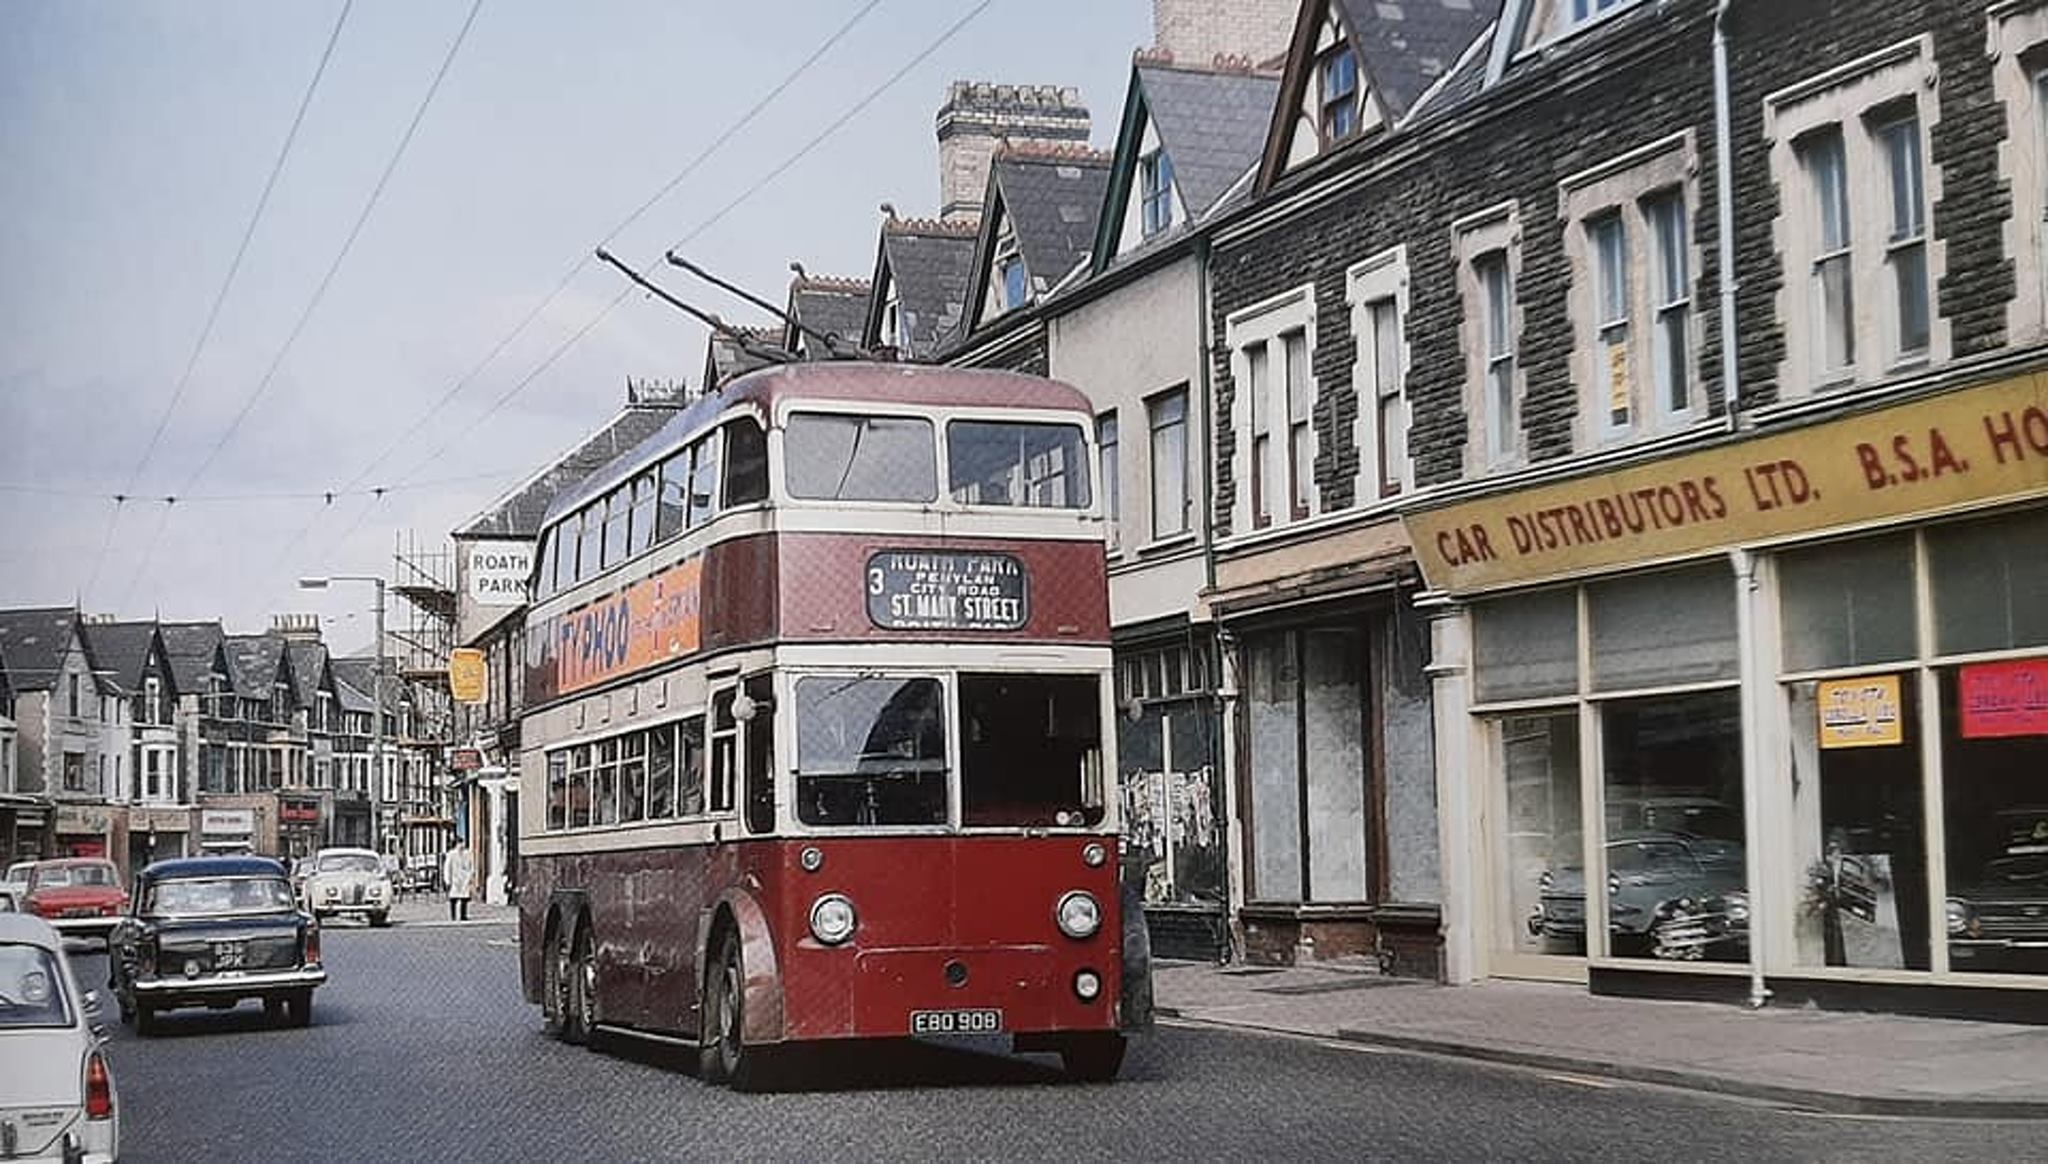 city-road-no-3-trolley-bus-and-bsa-motors-photo-byron-barnett